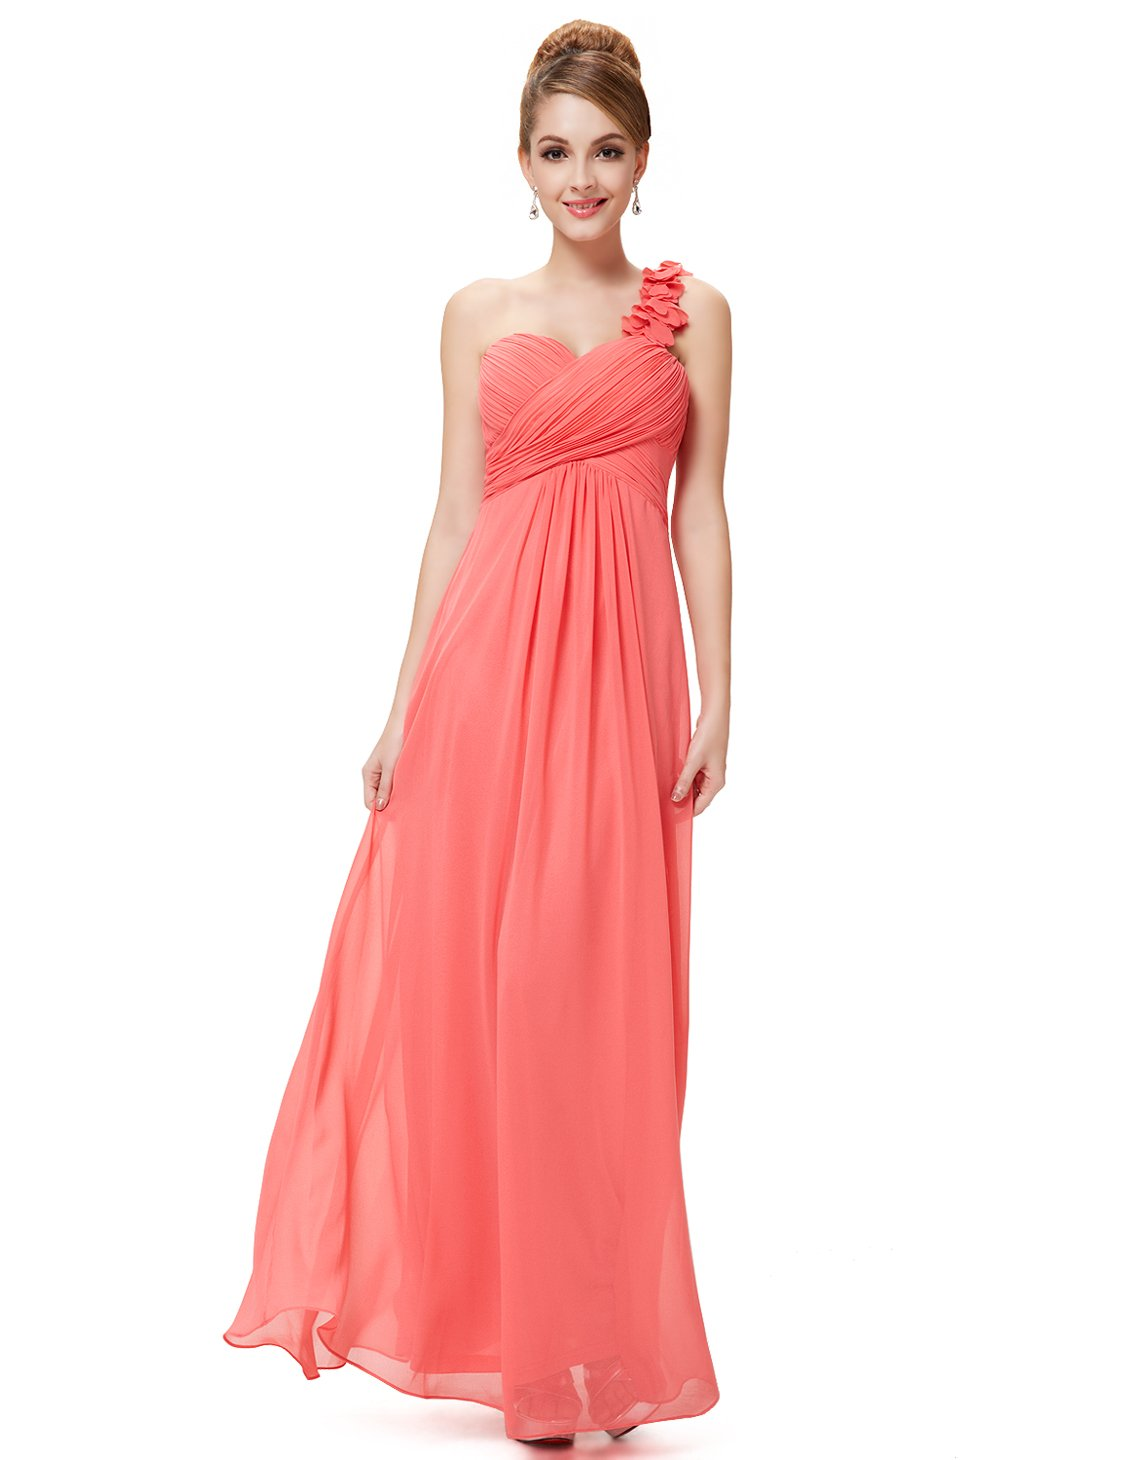 Ever-Pretty Womens Sleeveless Sweetheart Neckline Long Ruched Evening Gown 8 US Coral